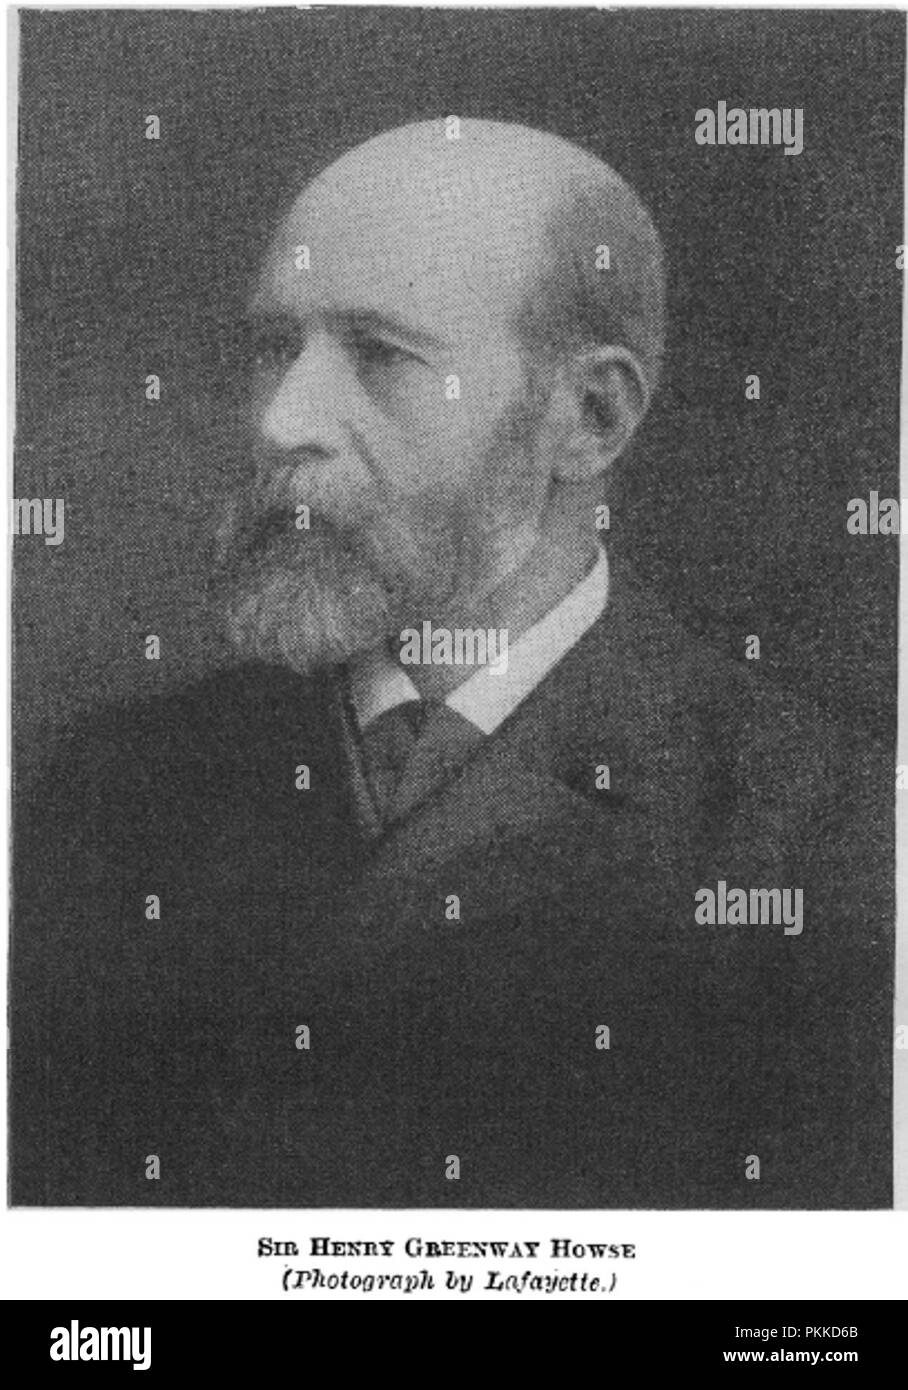 A portrait photograph of Sir Henry Greenway Howse, taken by Lafayette and published in the British Medical Journal as part of an obituary. Sir Henry Howse was a former president of the Royal College of Surgeons. - Stock Image